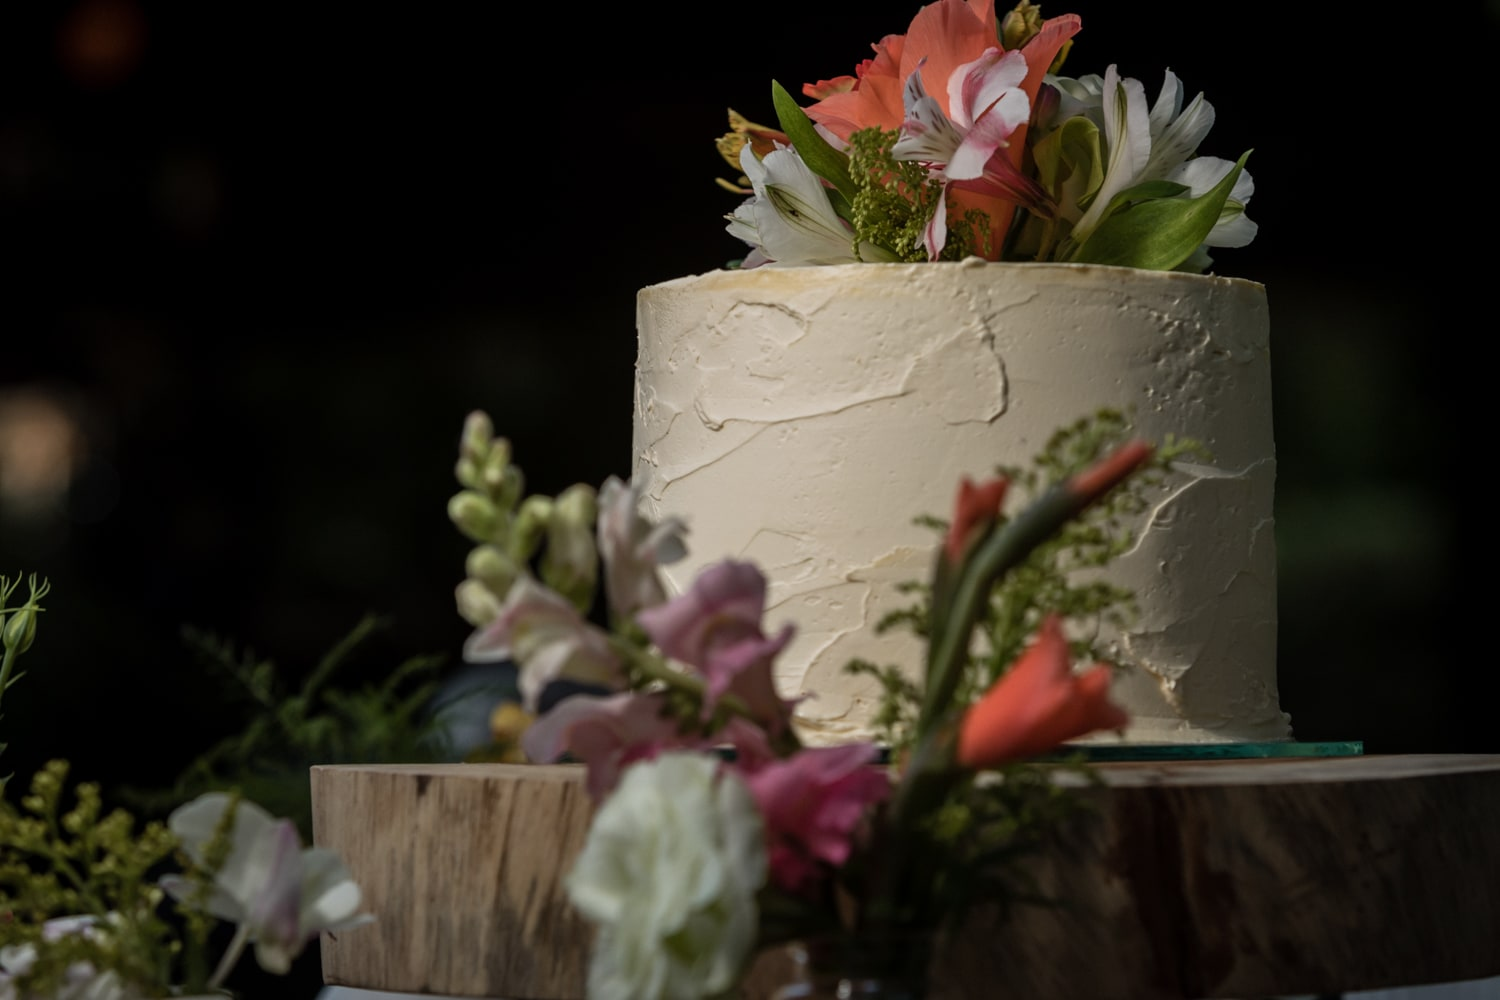 Tropically decorated wedding cake during reception at Langosta Beach Club.